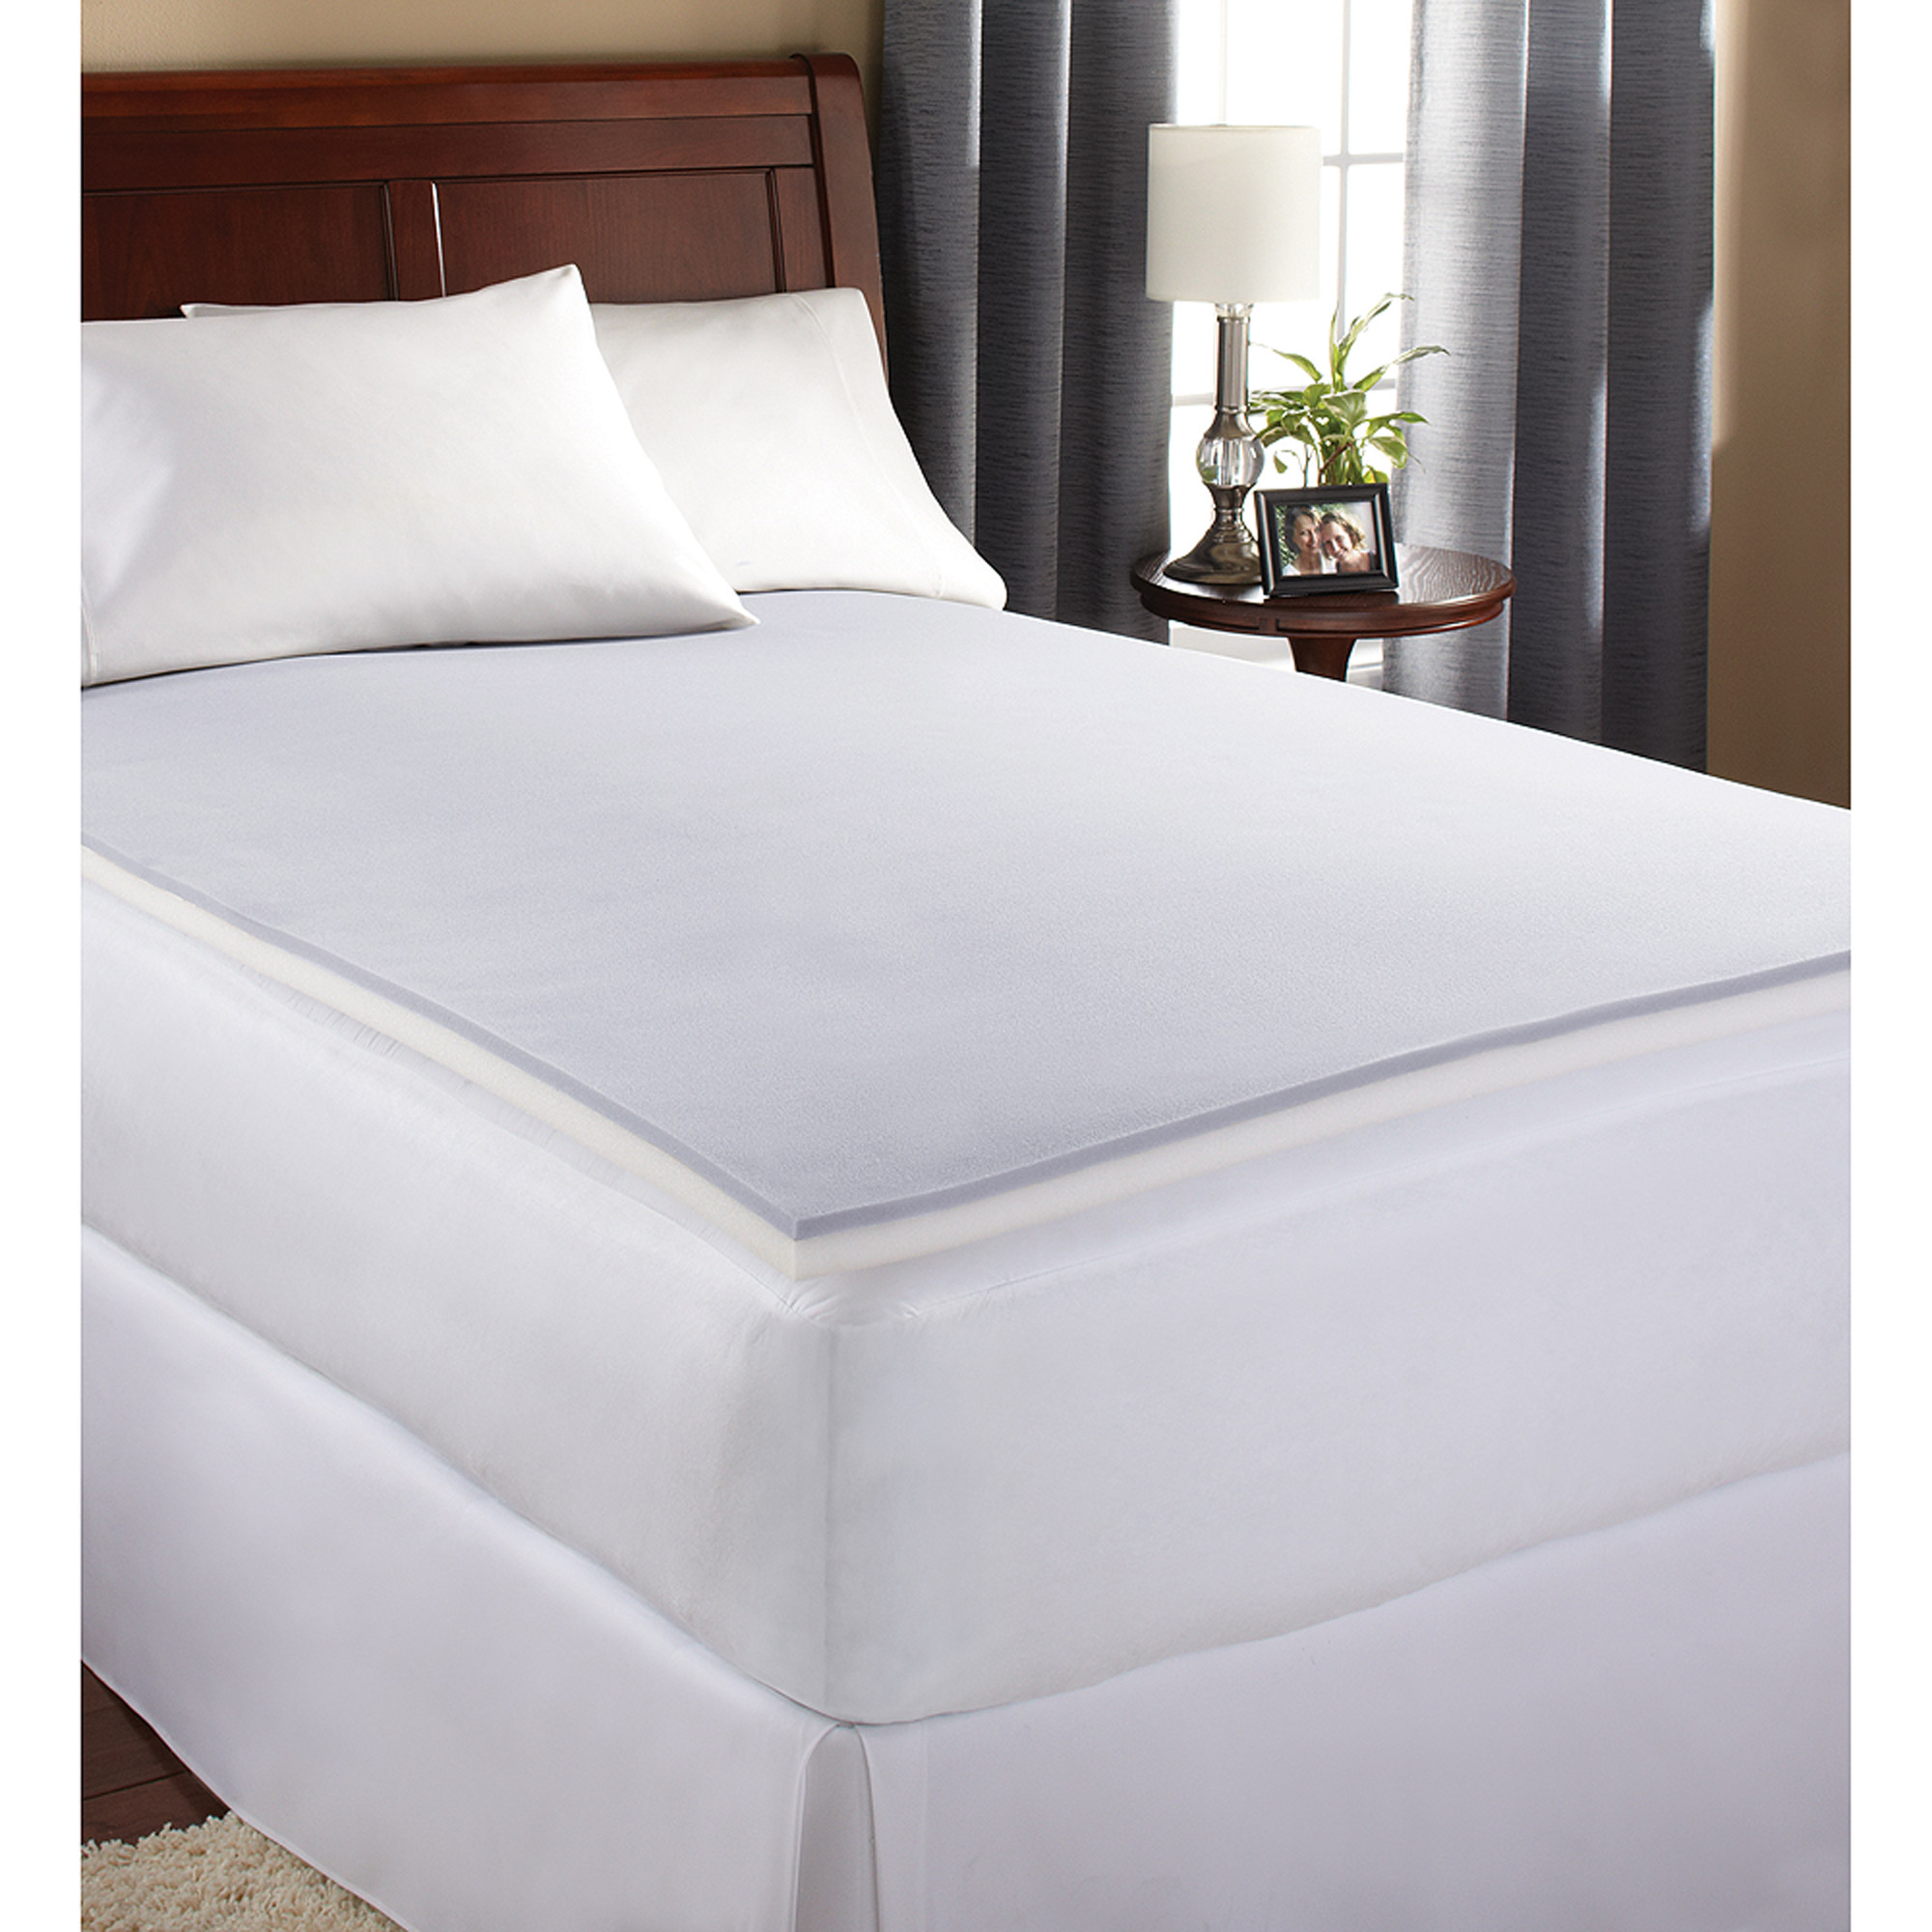 Mainstays 1 5 Memory Foam Mattress Topper Twin Xl Walmart Com